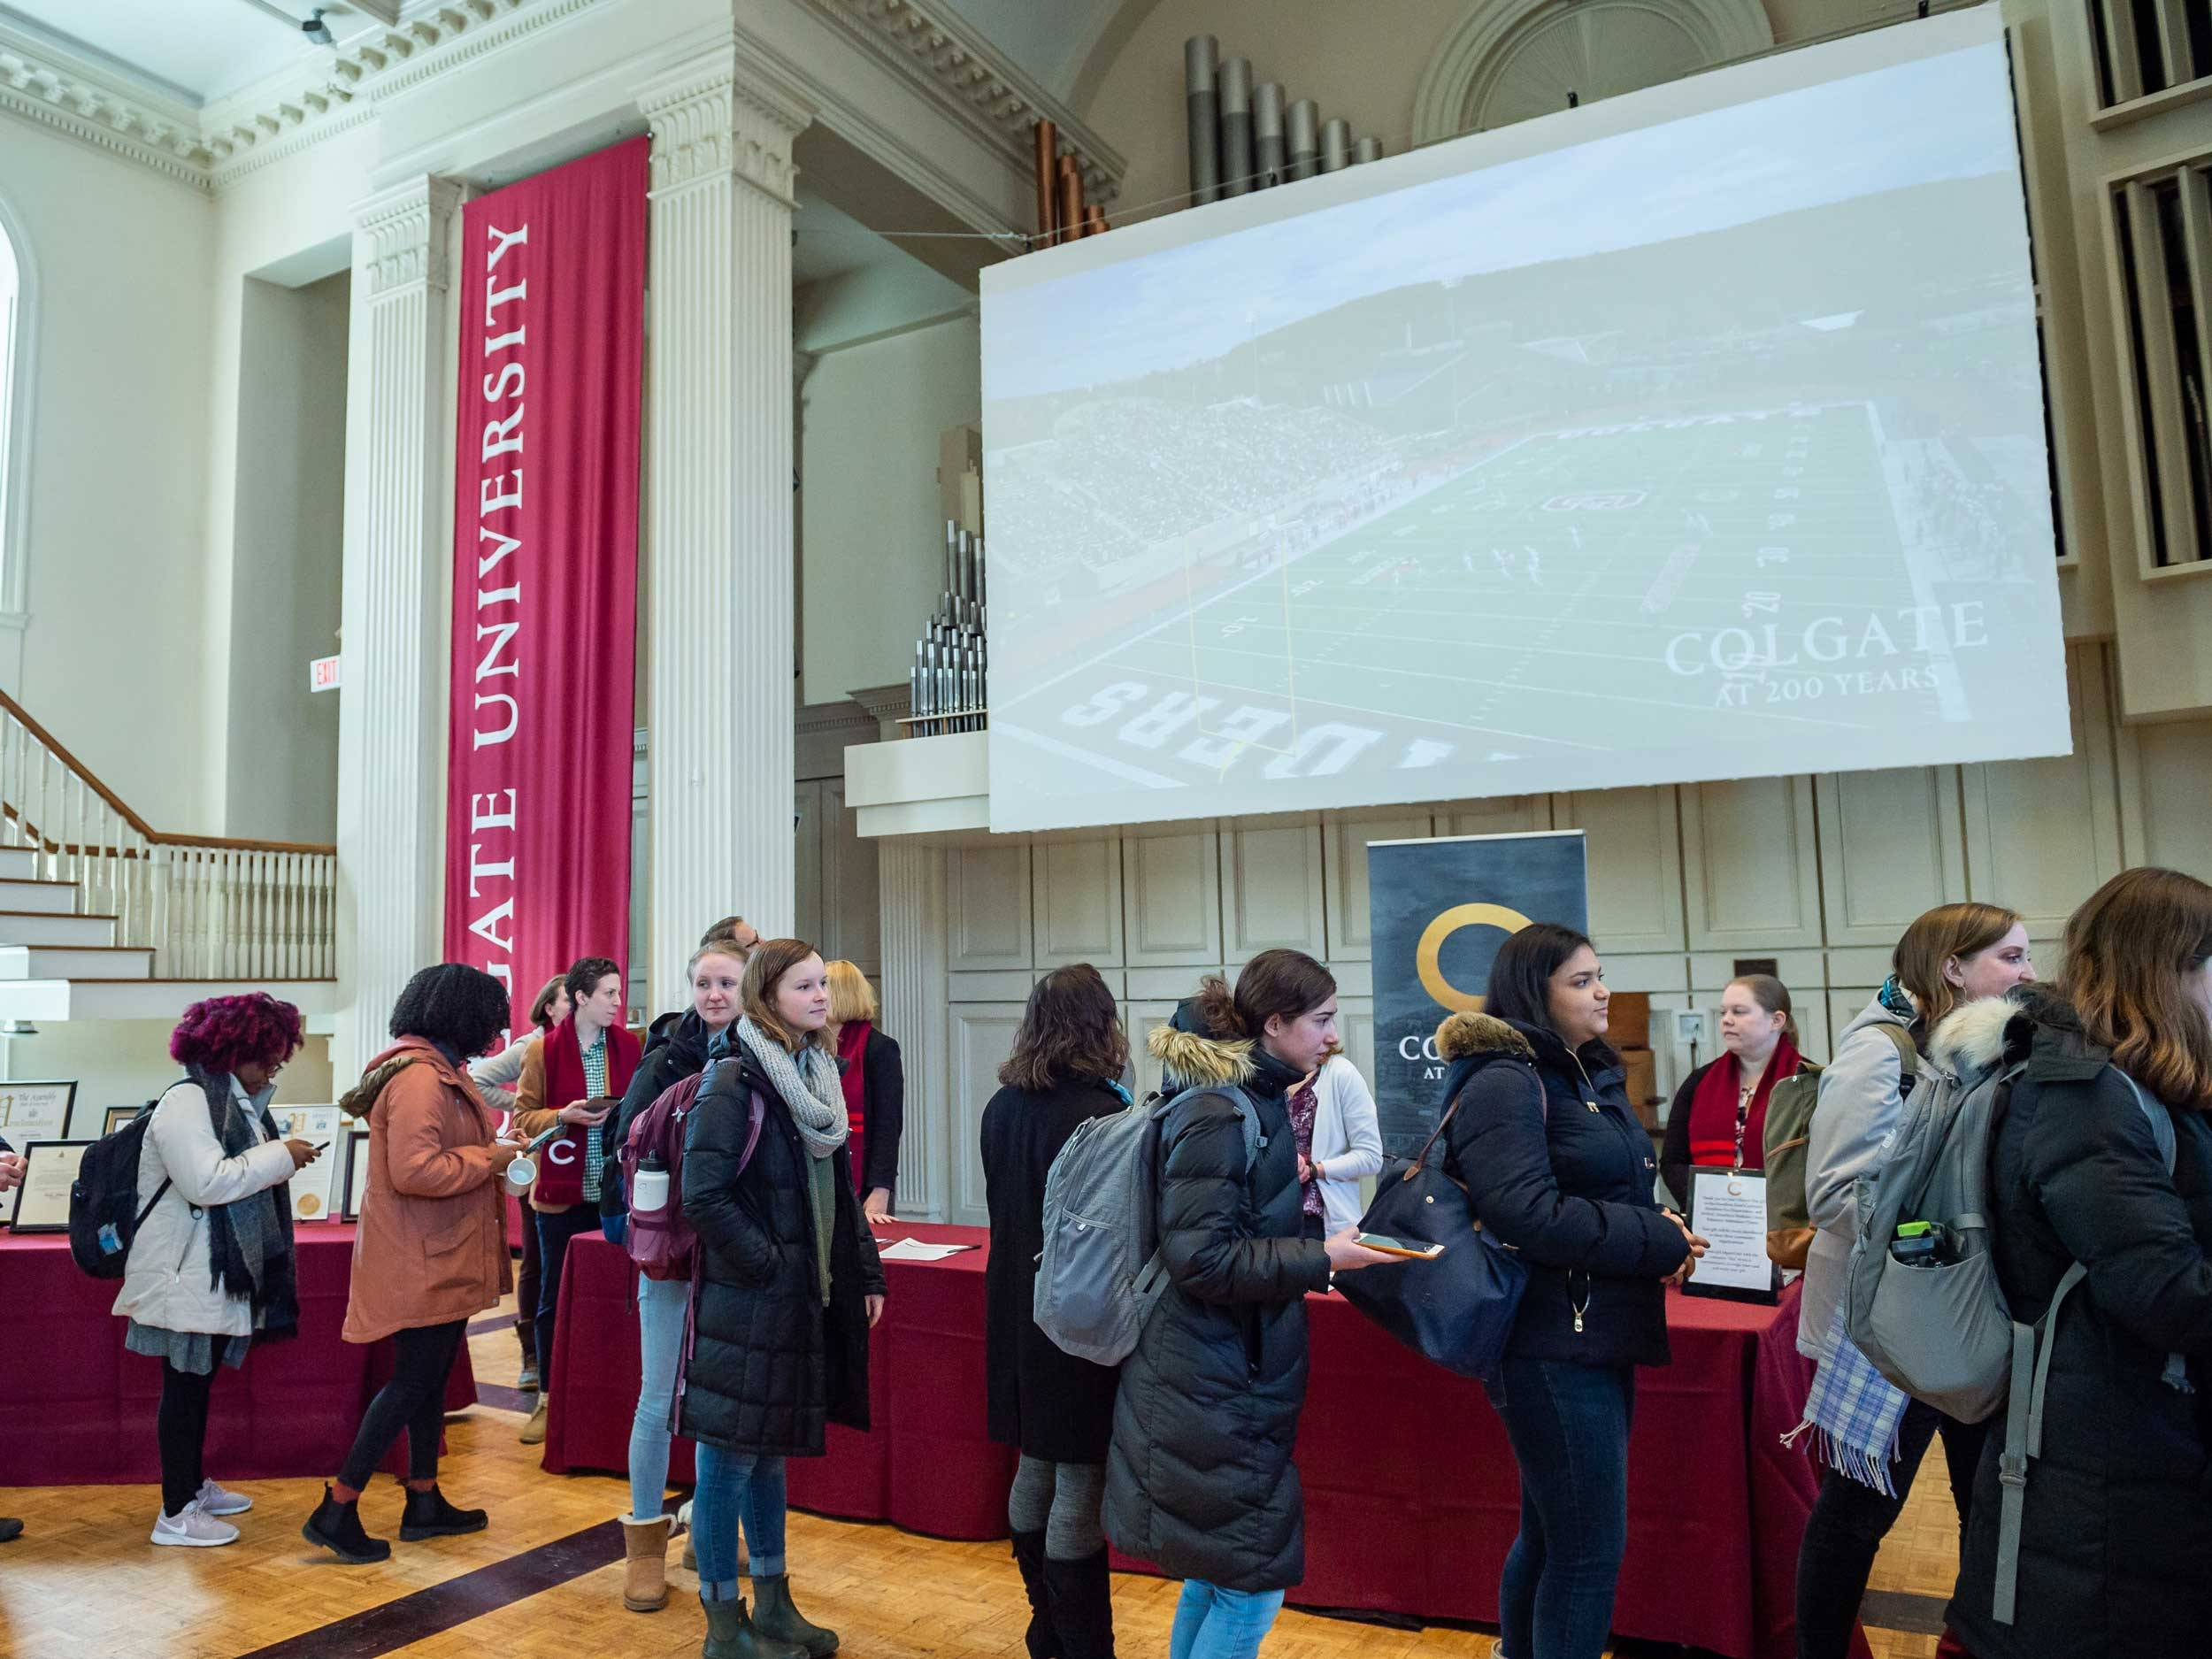 Colgate community members line up to celebrate Charter Day in Memorial Chapel